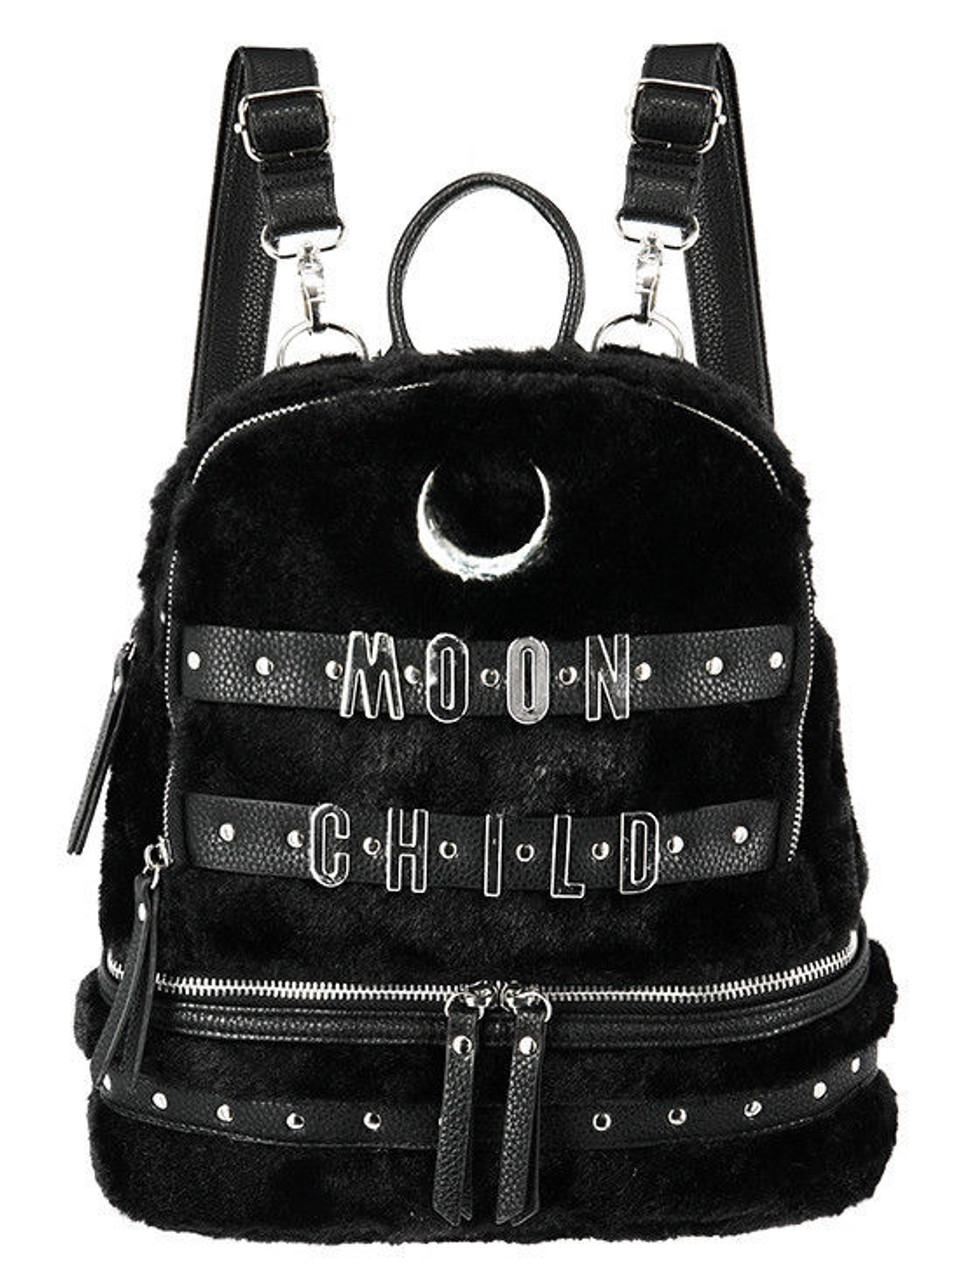 b695e7a87c83 Restyle Crescent Moon Child Faux Furry Gothic Punk Occult School Bag  Backpack - Fearless Apparel